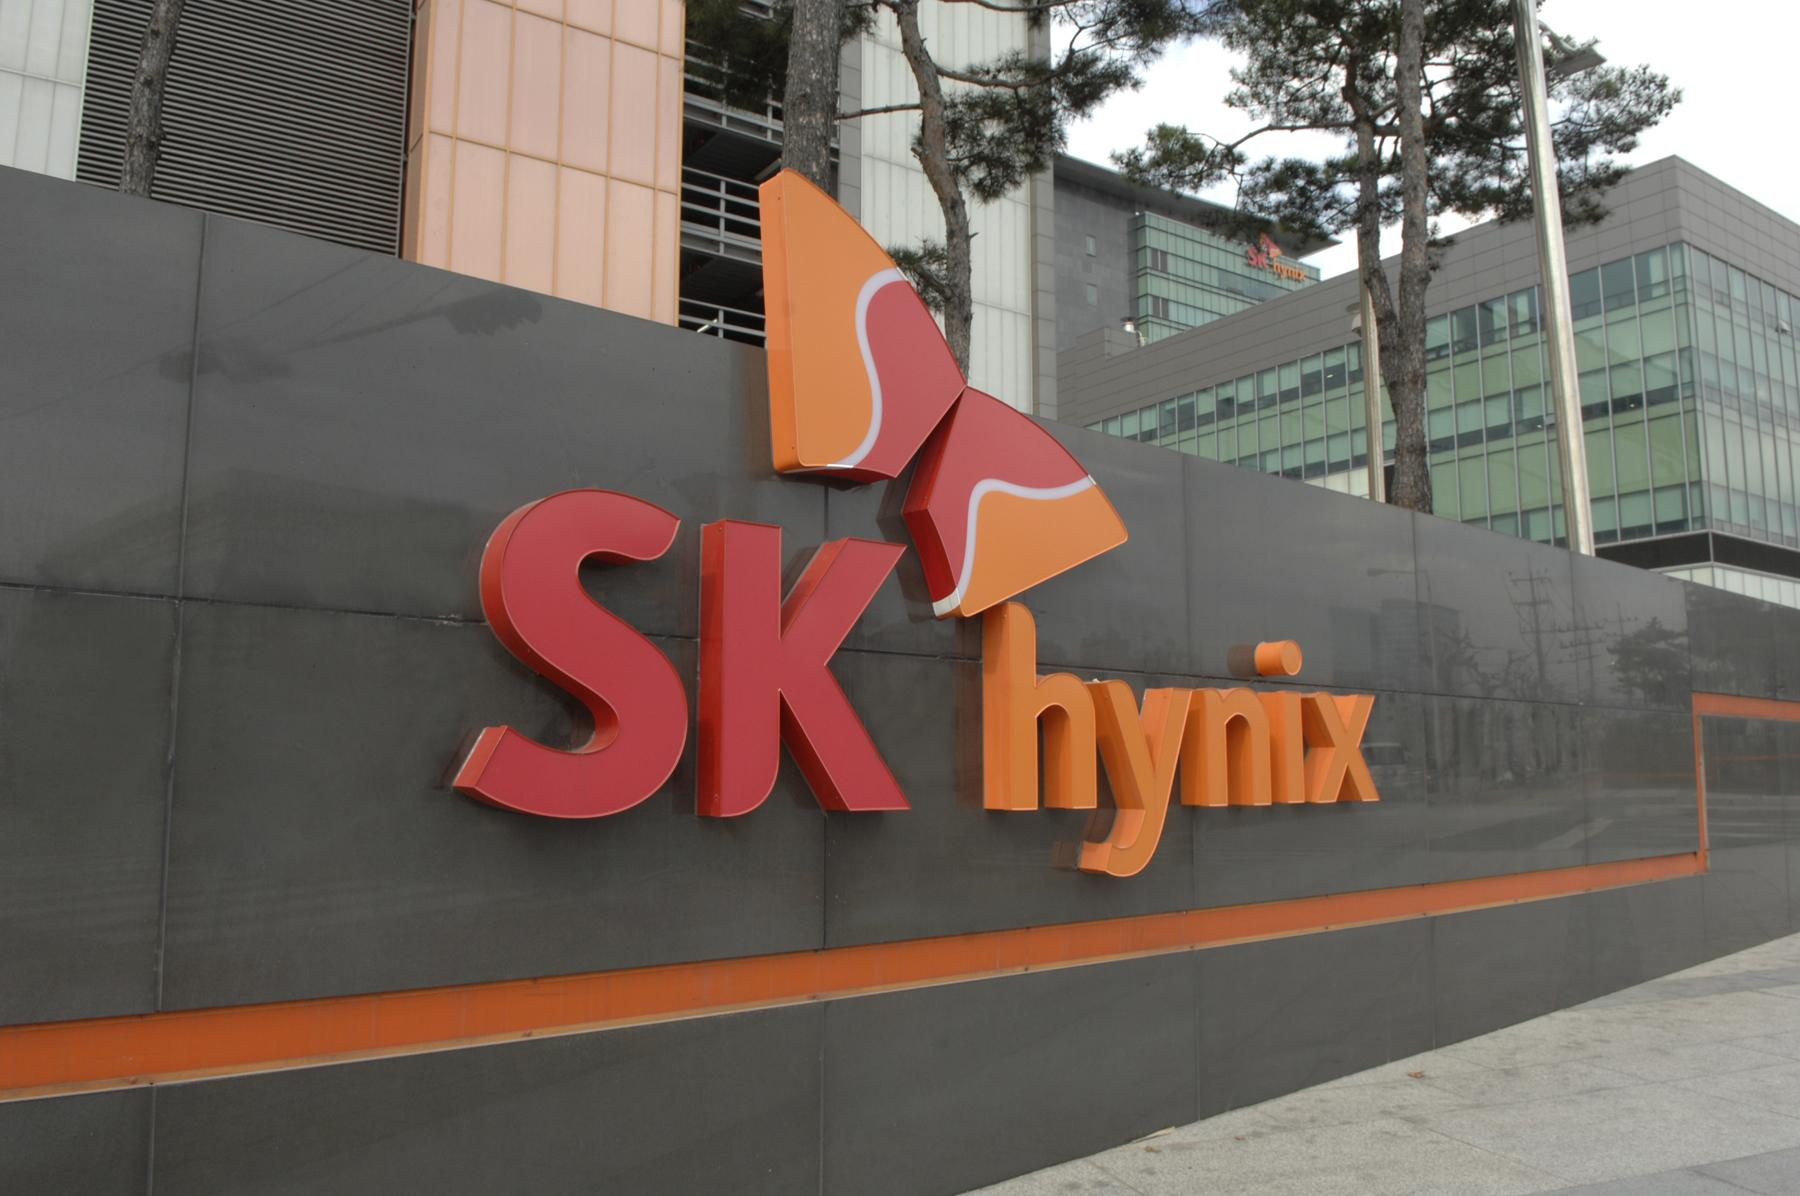 SK Hynix's operating income in The second quarter of this year kit the lowest in 13 quarters.